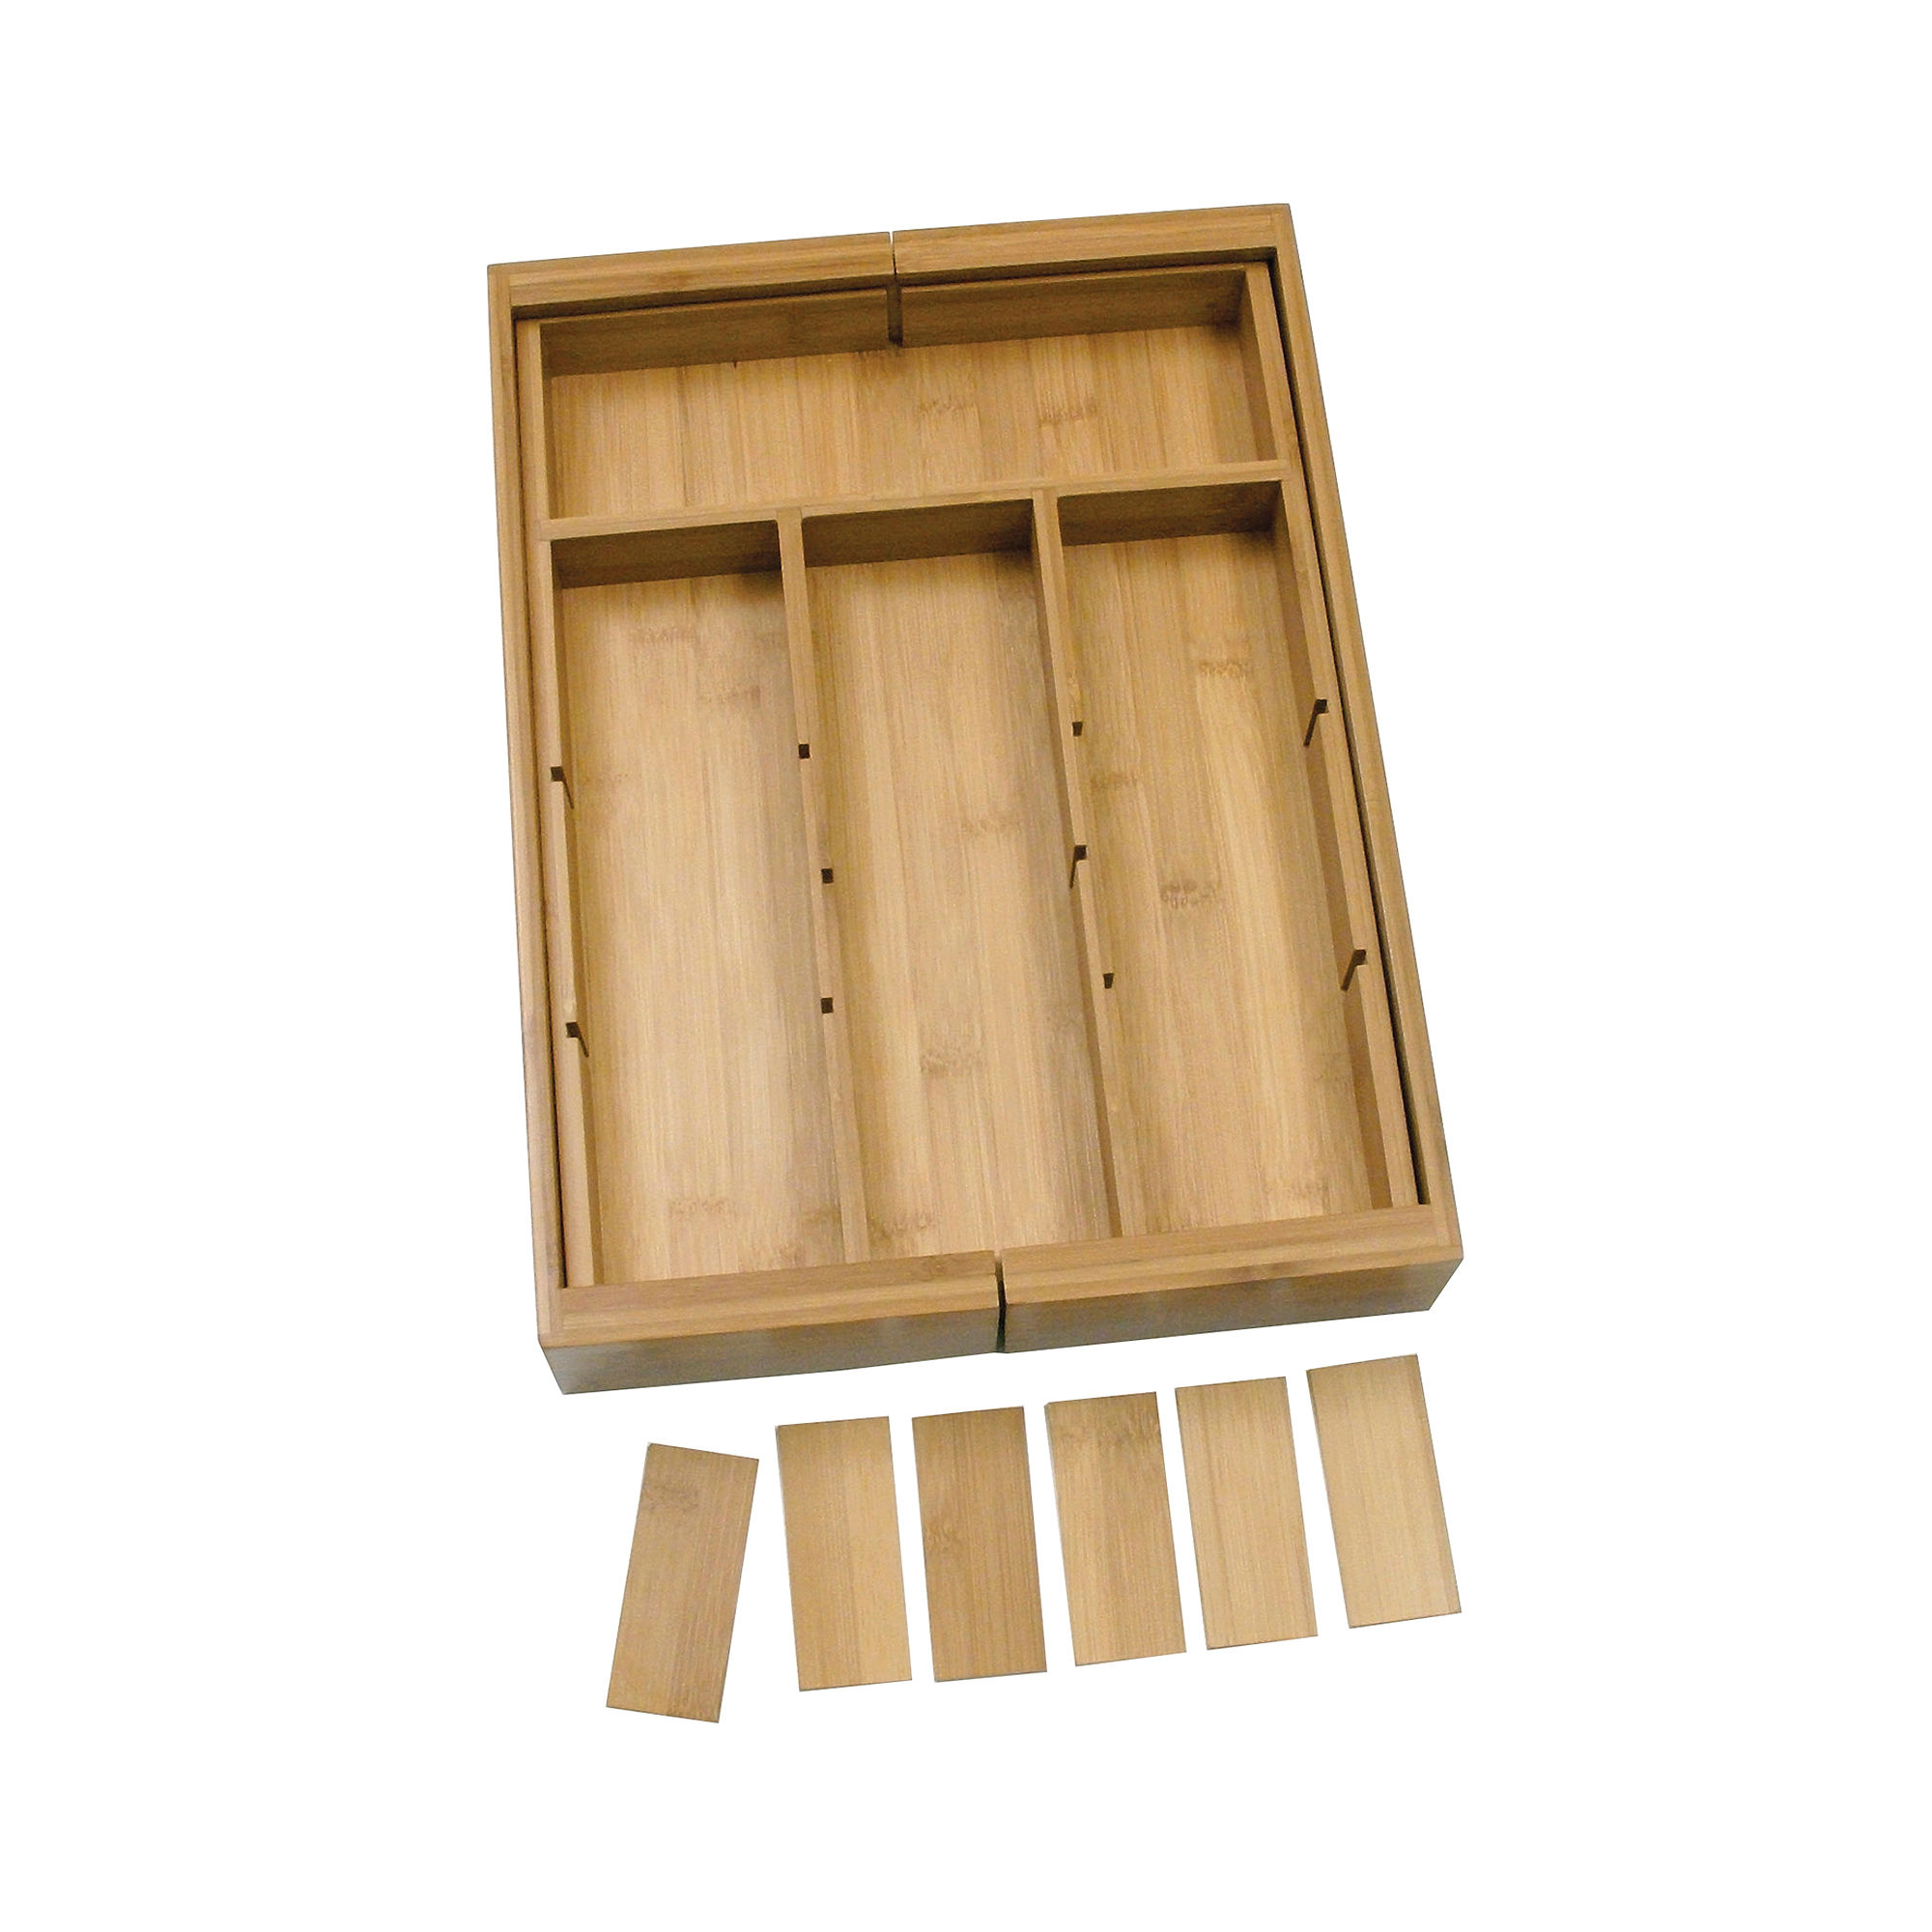 LIPPER 8882 BAMBOO ORGANIZER  EXPANDABLE ADJUSTABLE WITH 6